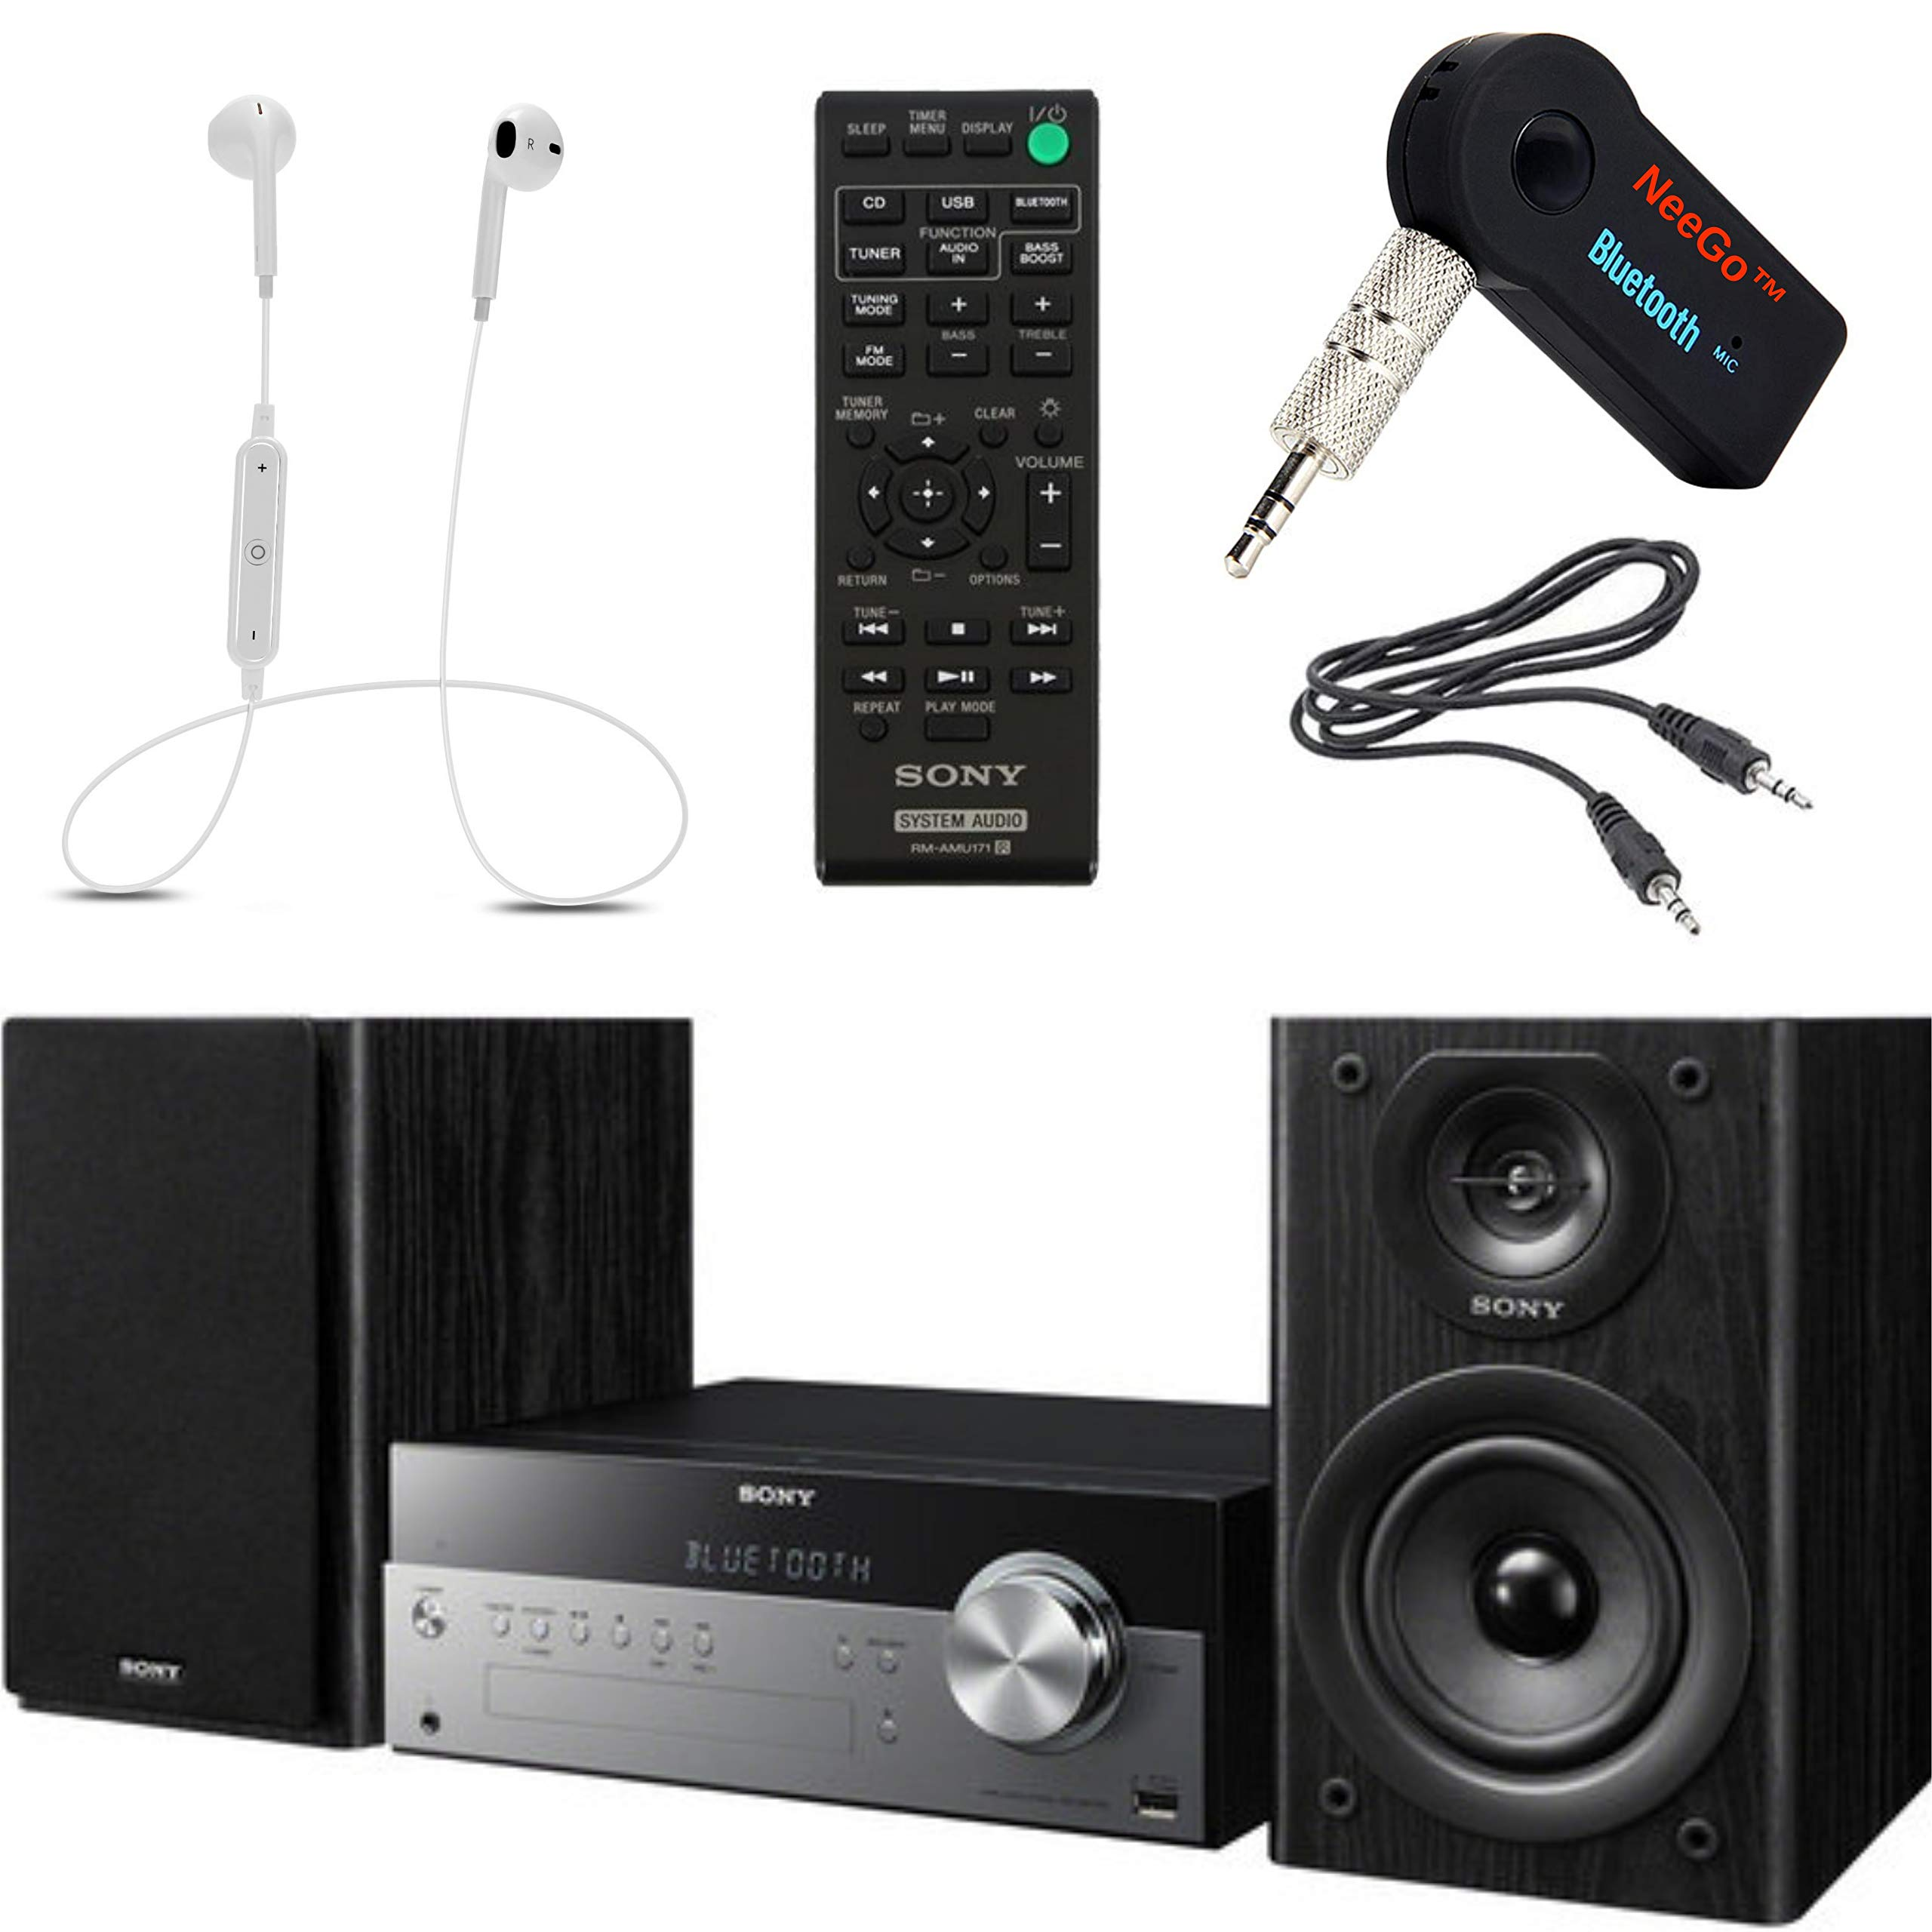 Sony Bluetooth Micro Music System Bundle - [2] Piece Set Includes Micro Hi-fi Shelf System with Single Disc Cd Player, Bluetooth, USB Input, 2-Way, Bass Reflex Speakers NeeGo Bluetooth Receiver; by NEEGO